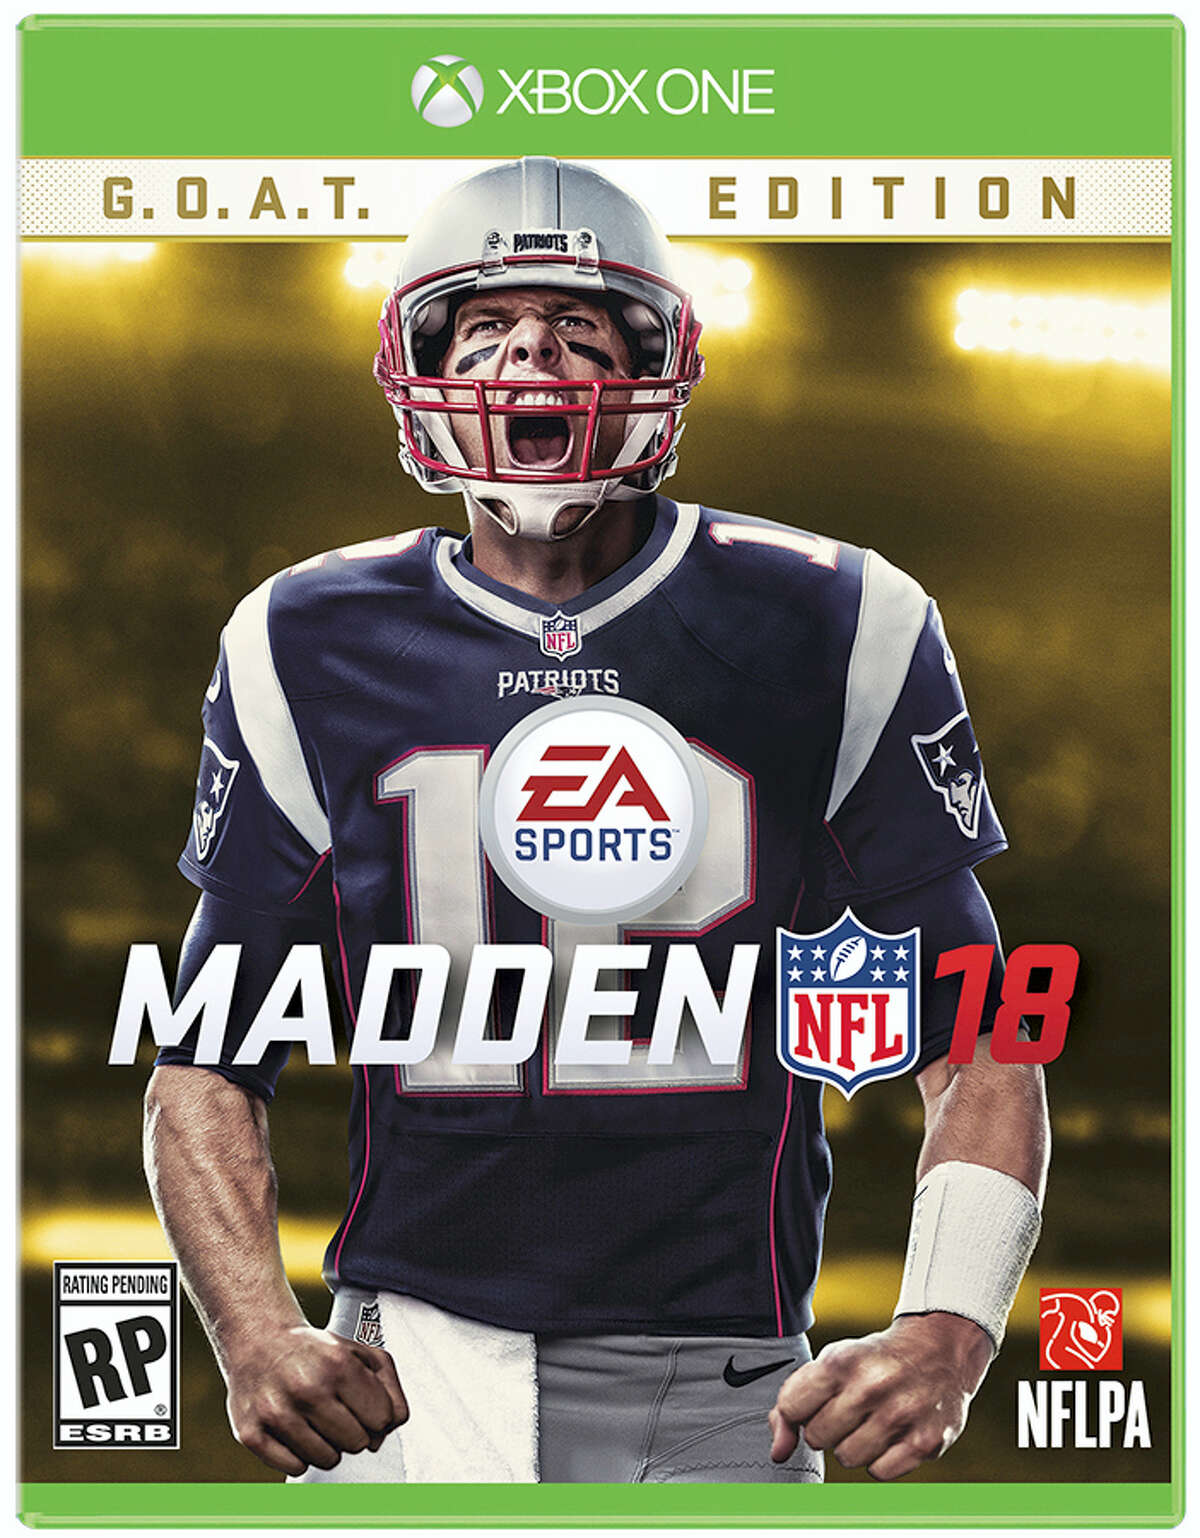 This image provided by EA Sports shows New England Patriots quarterback Tom Brady on the cover of the Madden 18 video game.